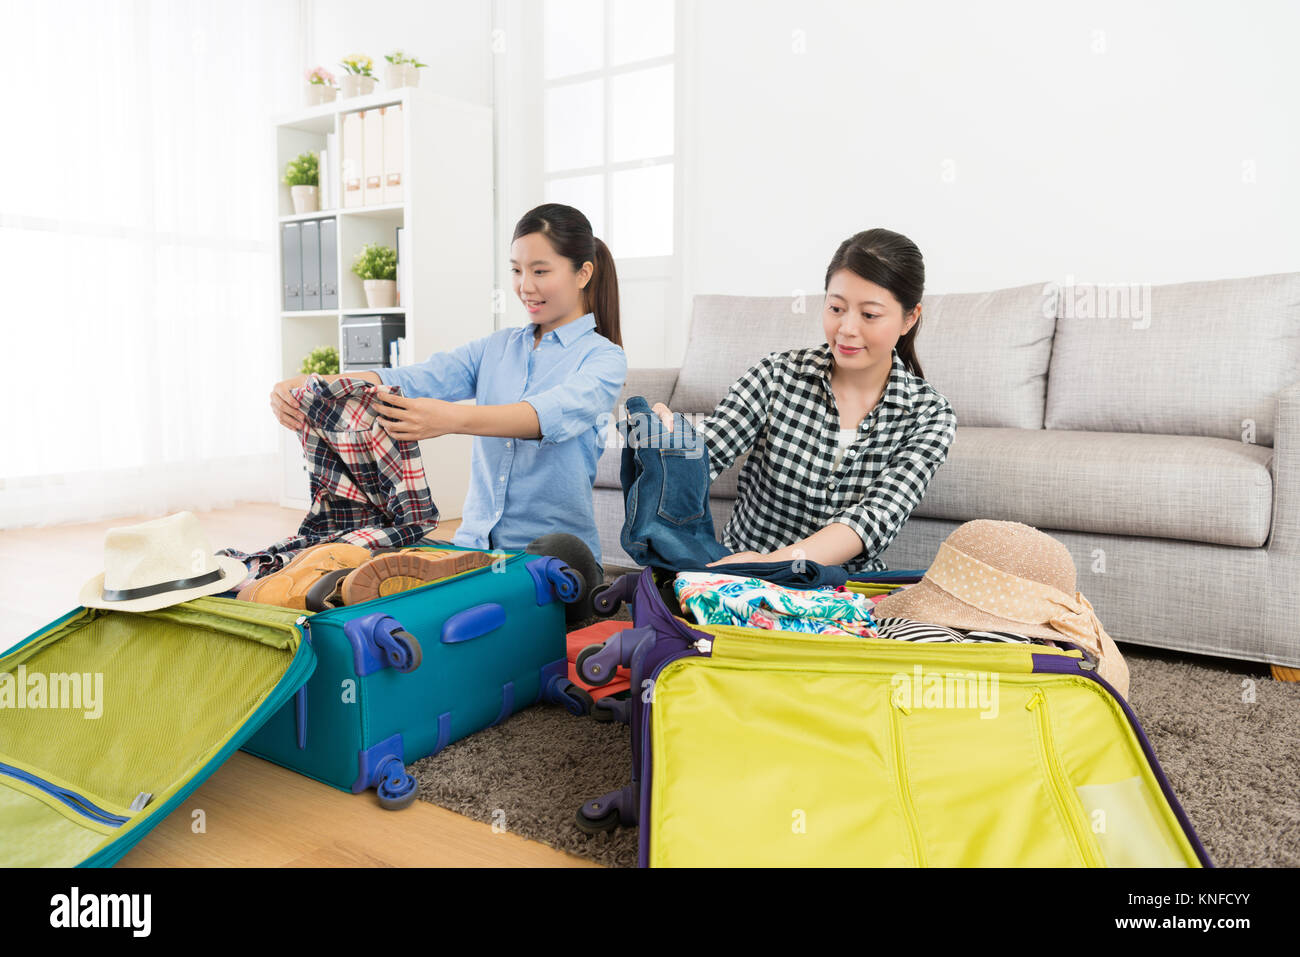 Woman Suitcases Living Room